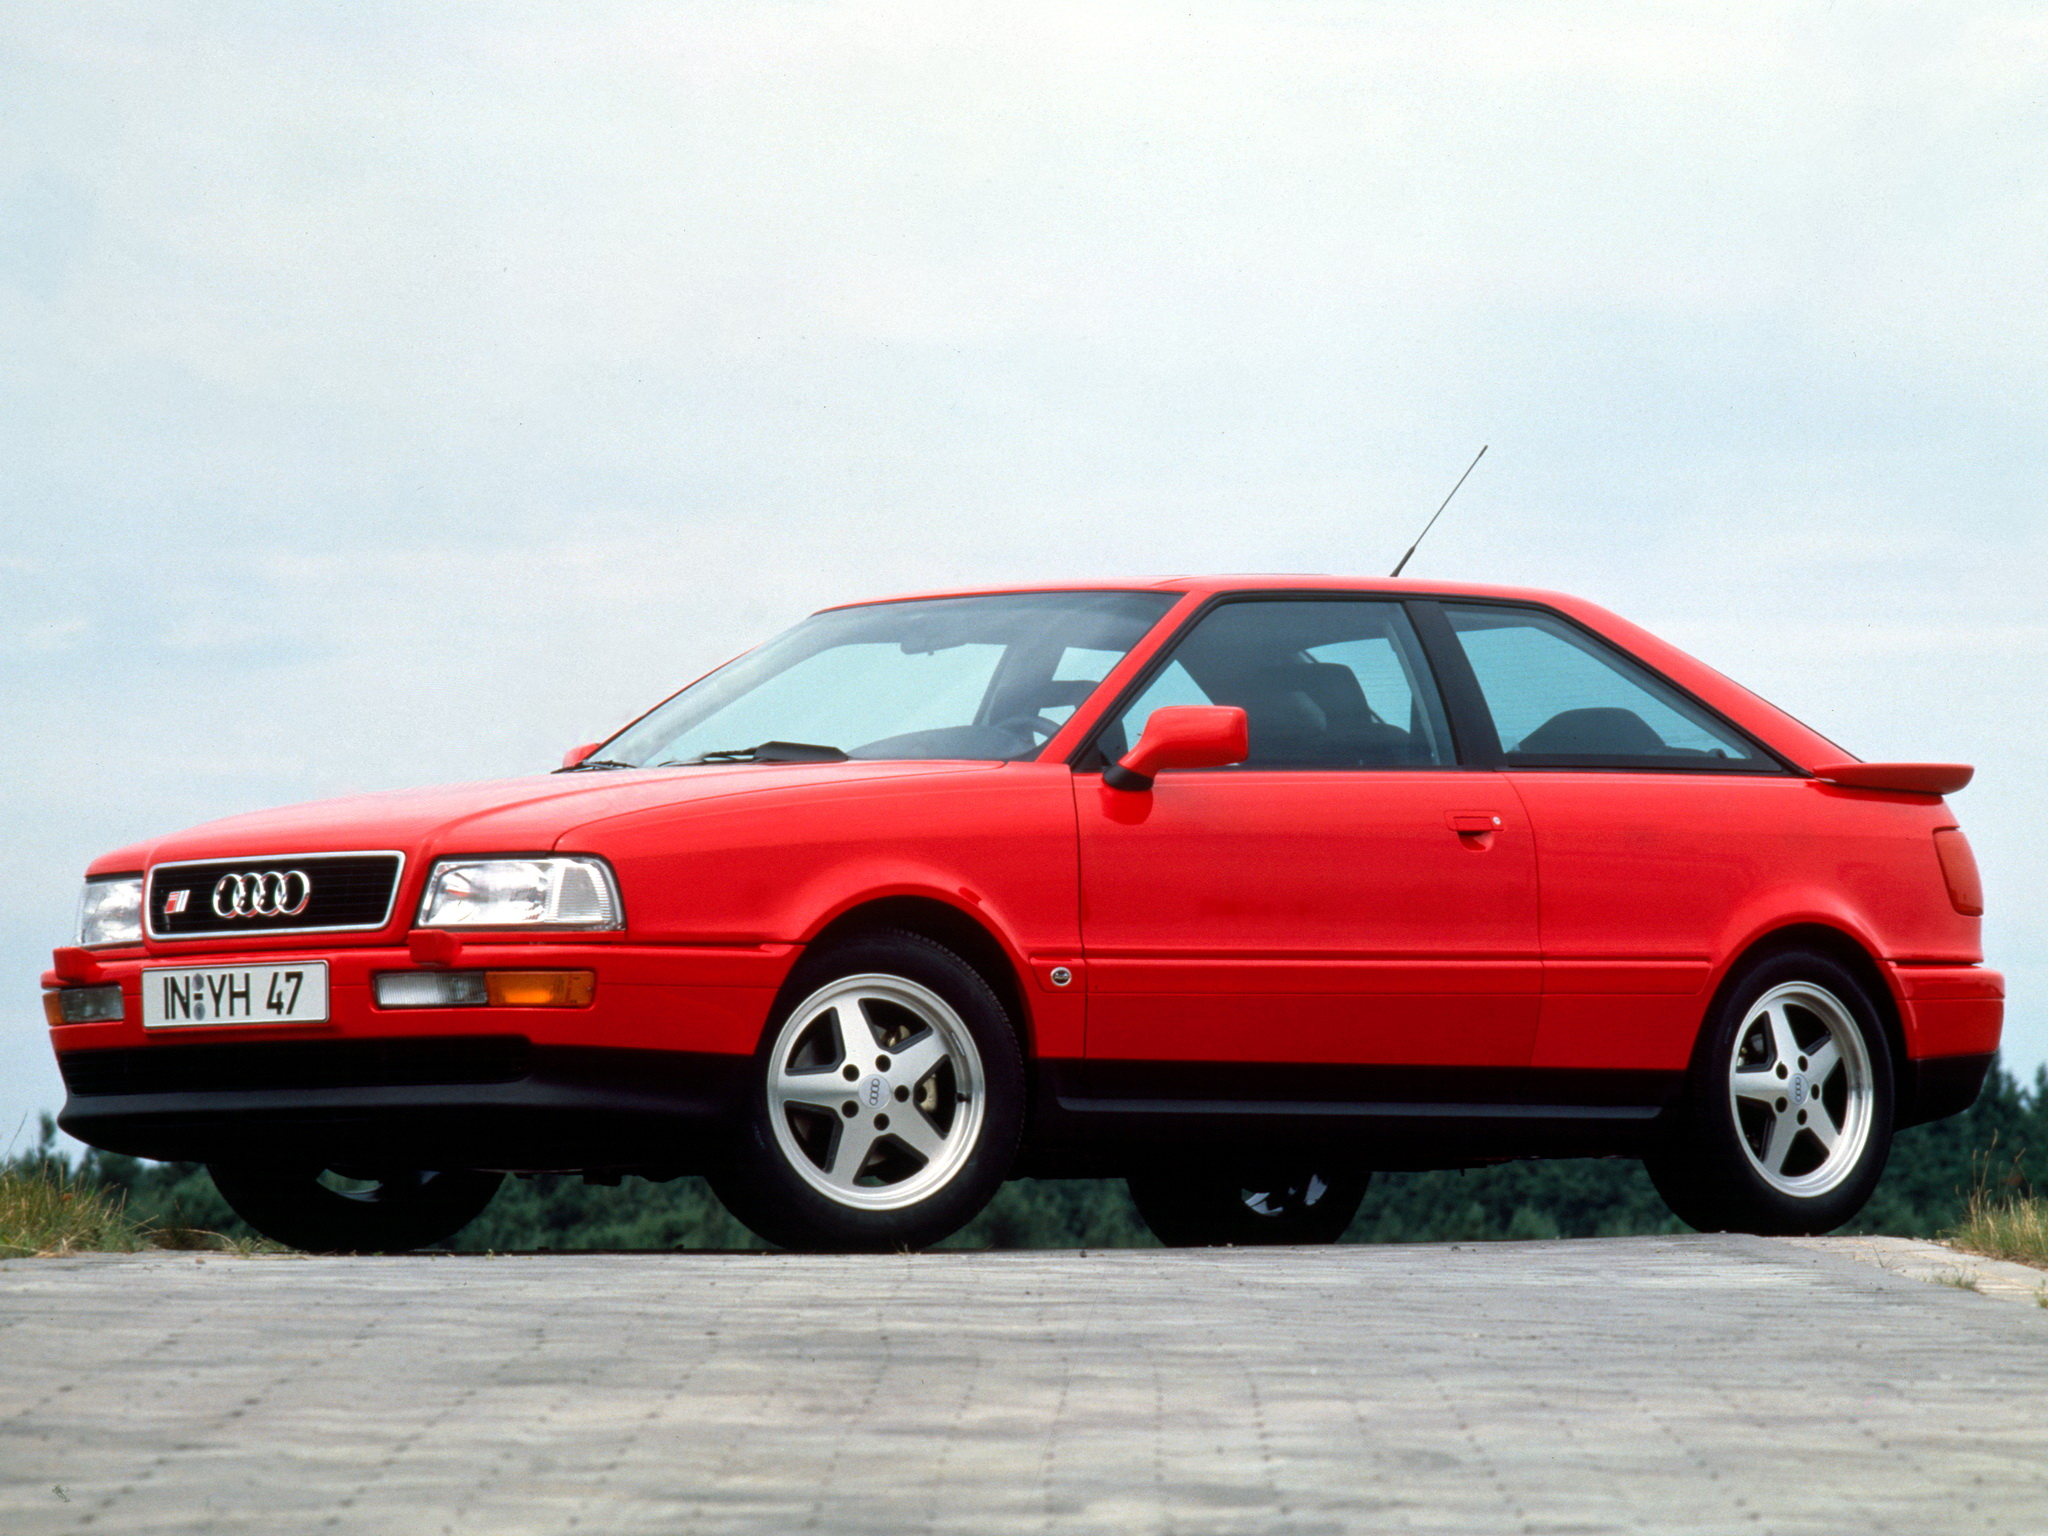 1993 Audi S2 coupe - pictures, information and specs ...